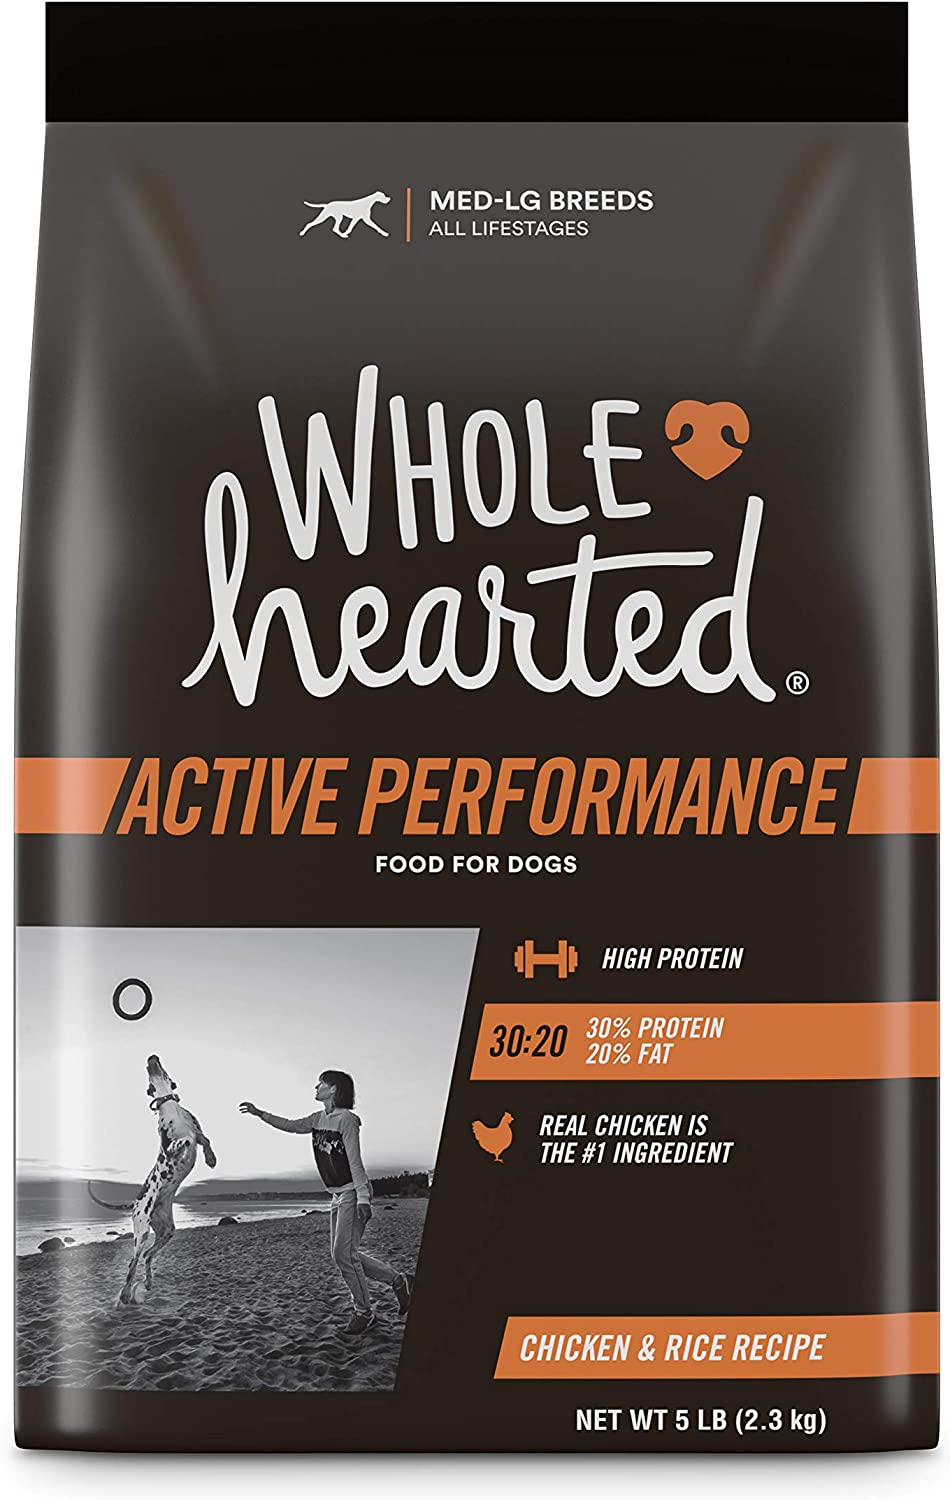 Wholehearted Active Performance High-Protein Chicken & Rice Recipe Dry Dog Food, 5 lbs.